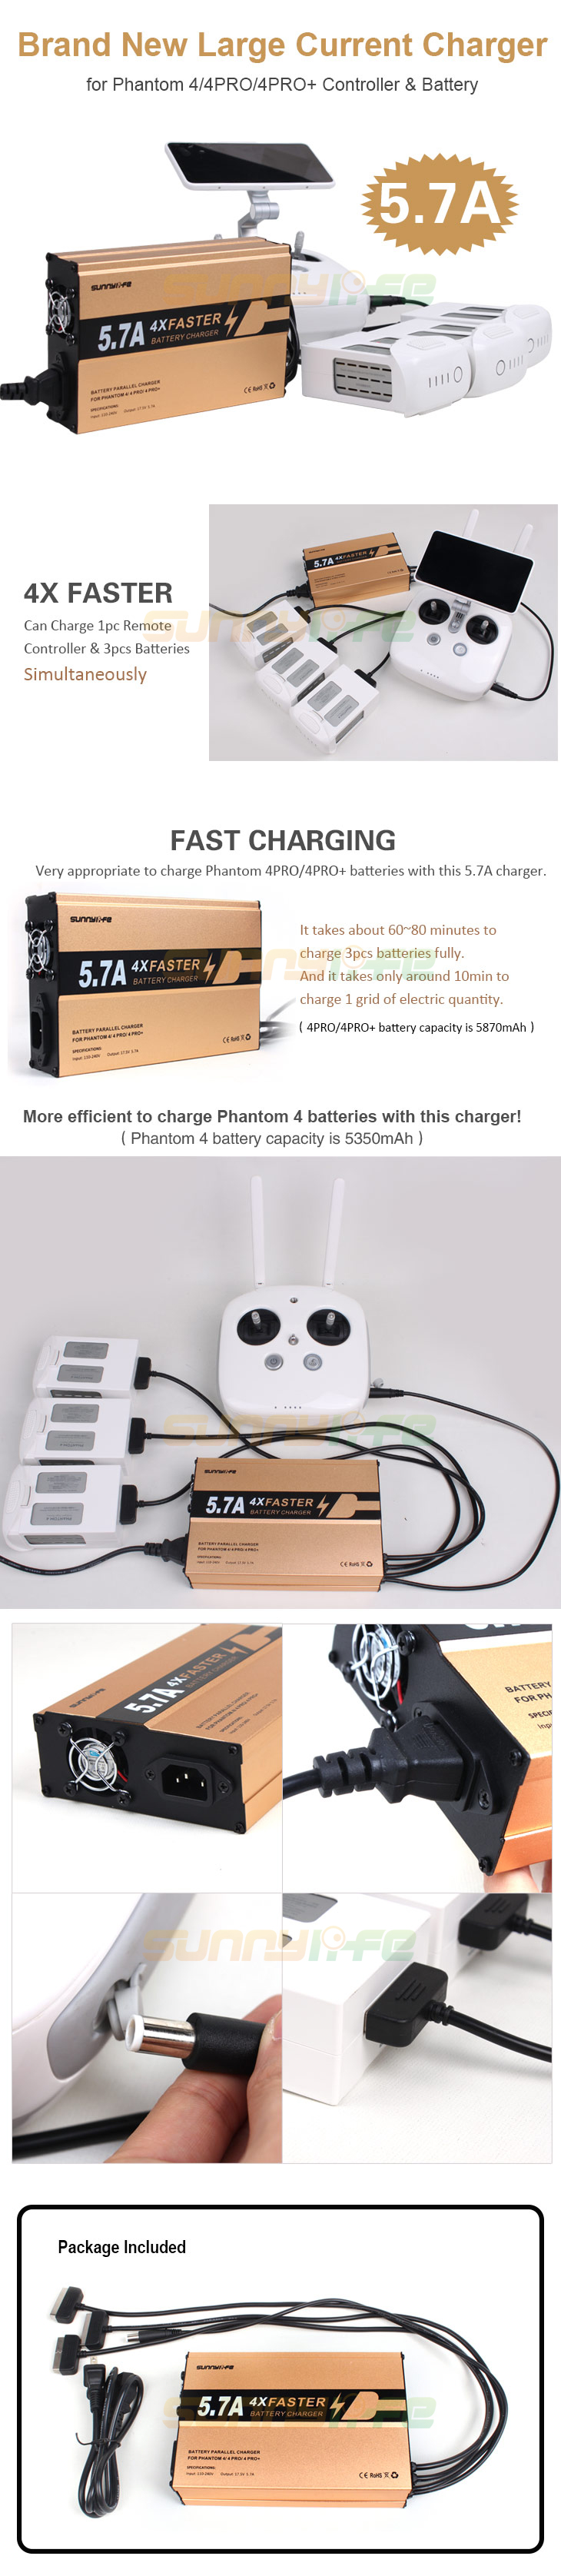 4 in 1 Faster 5.7A Rapid Battery Controller Parallel Multi Charger for DJI Phantom 4/4 PRO/PRO+ Rapid Battery charger EU/US plug